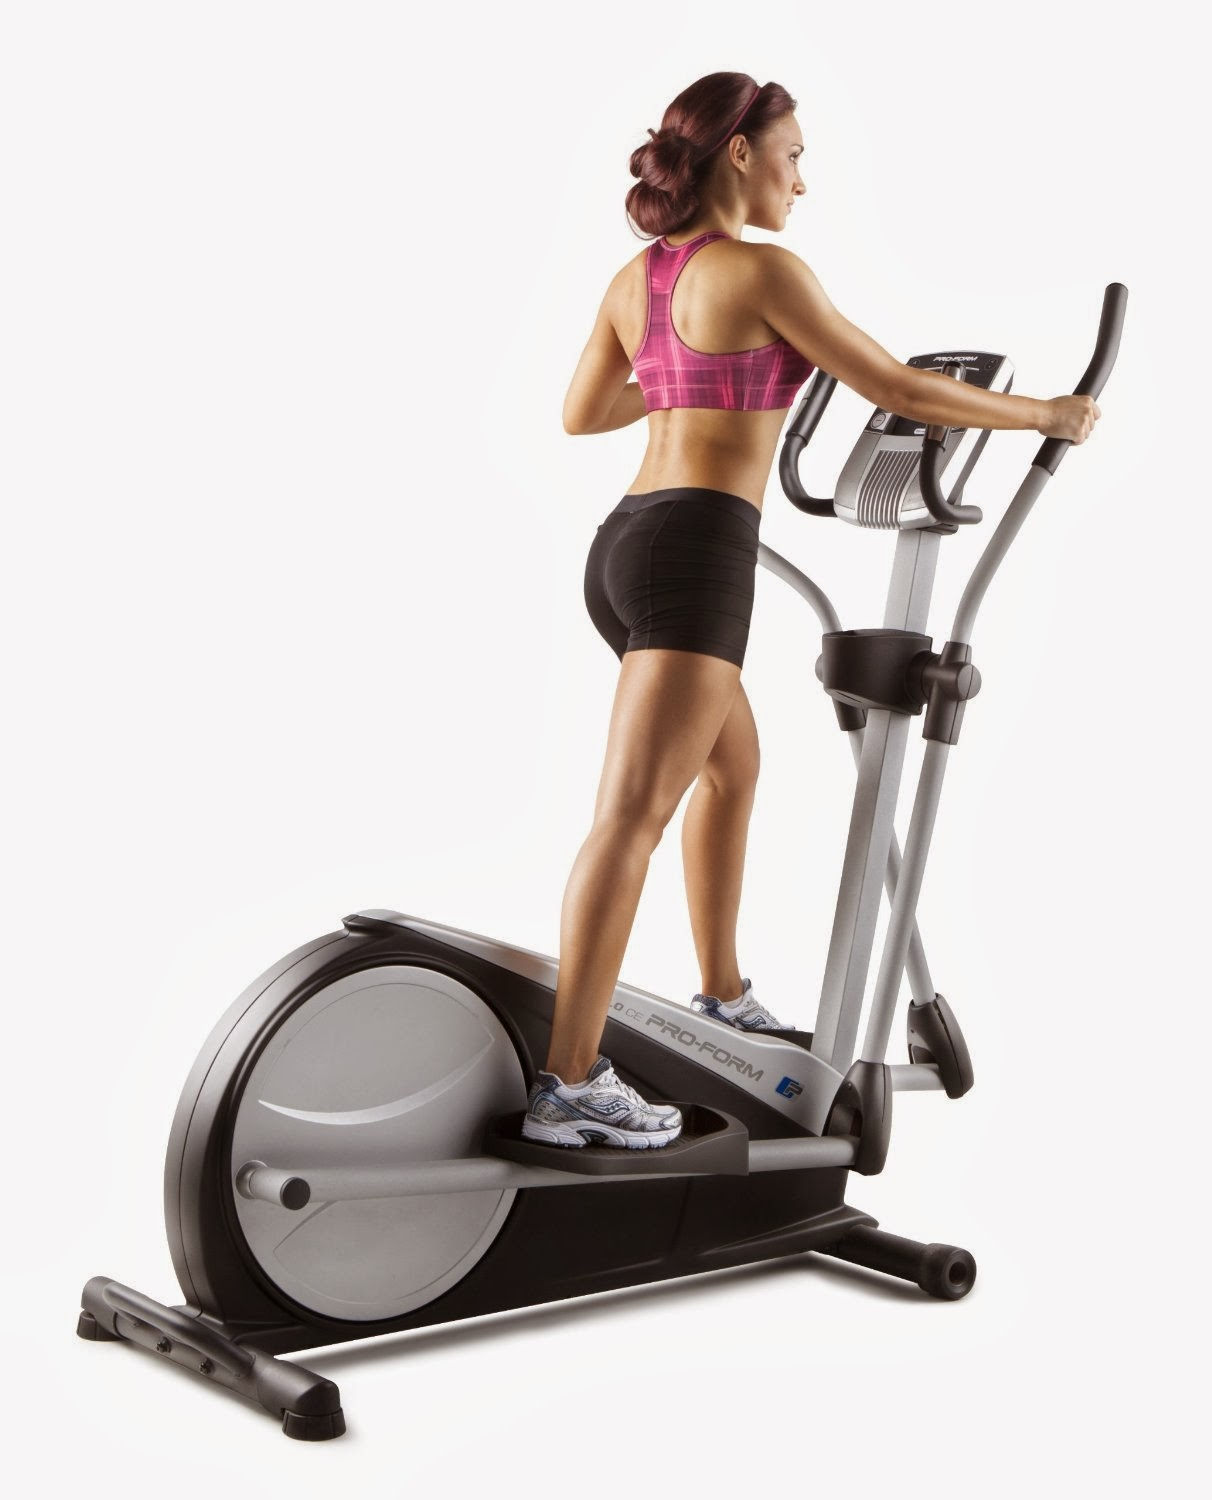 Proform 6.0 CE elliptical trainer image